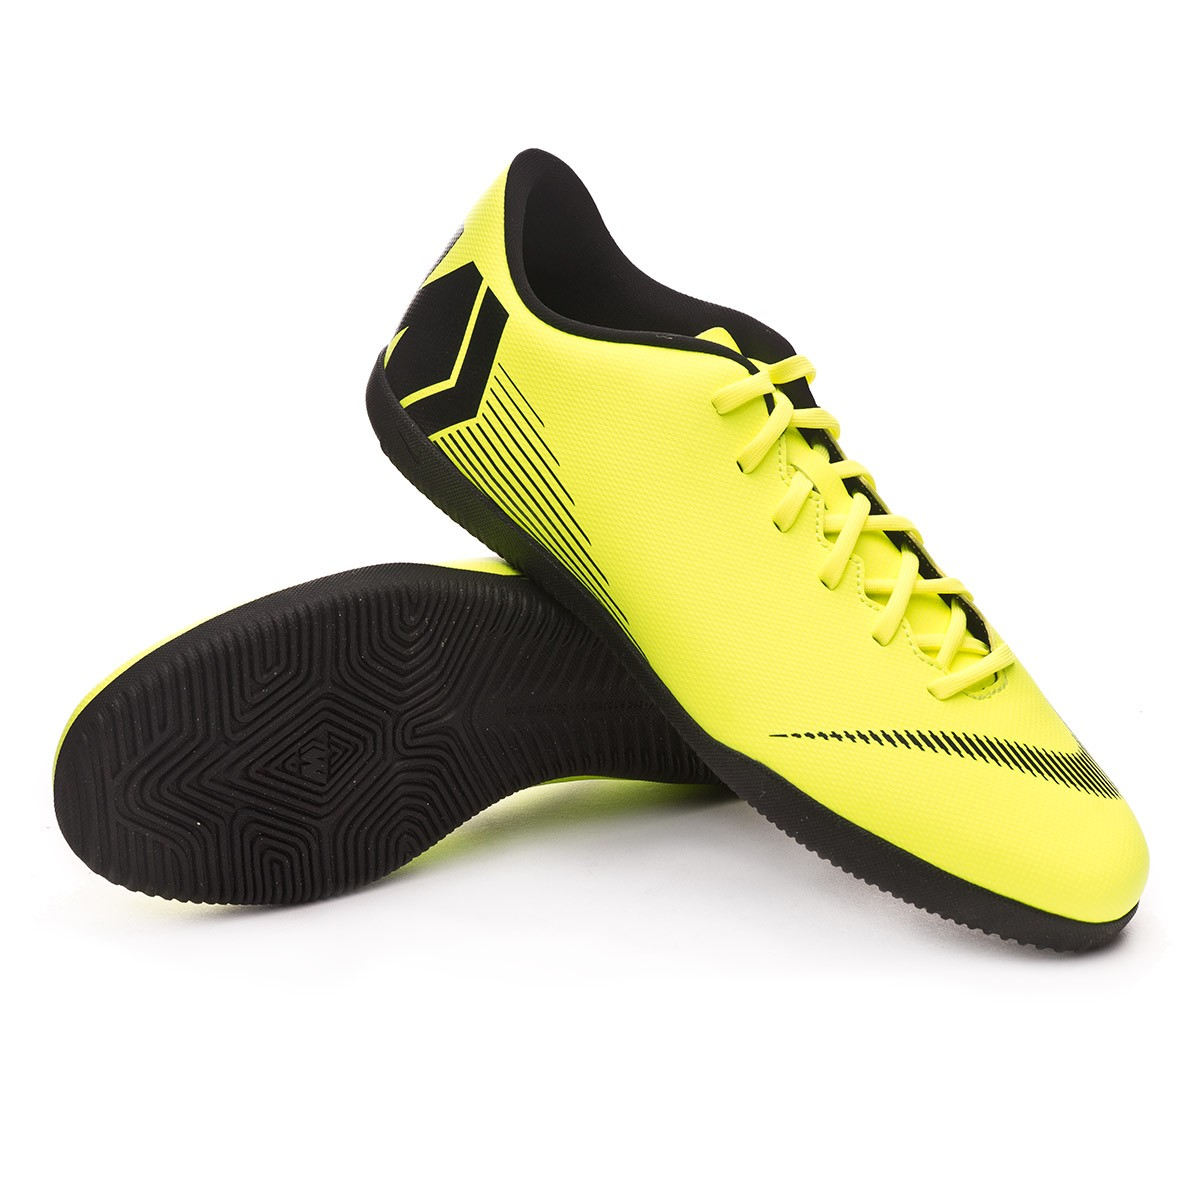 8efedb72bd5 Futsal Boot Nike Mercurial VaporX XII Club IC Volt-Black - Football store  Fútbol Emotion